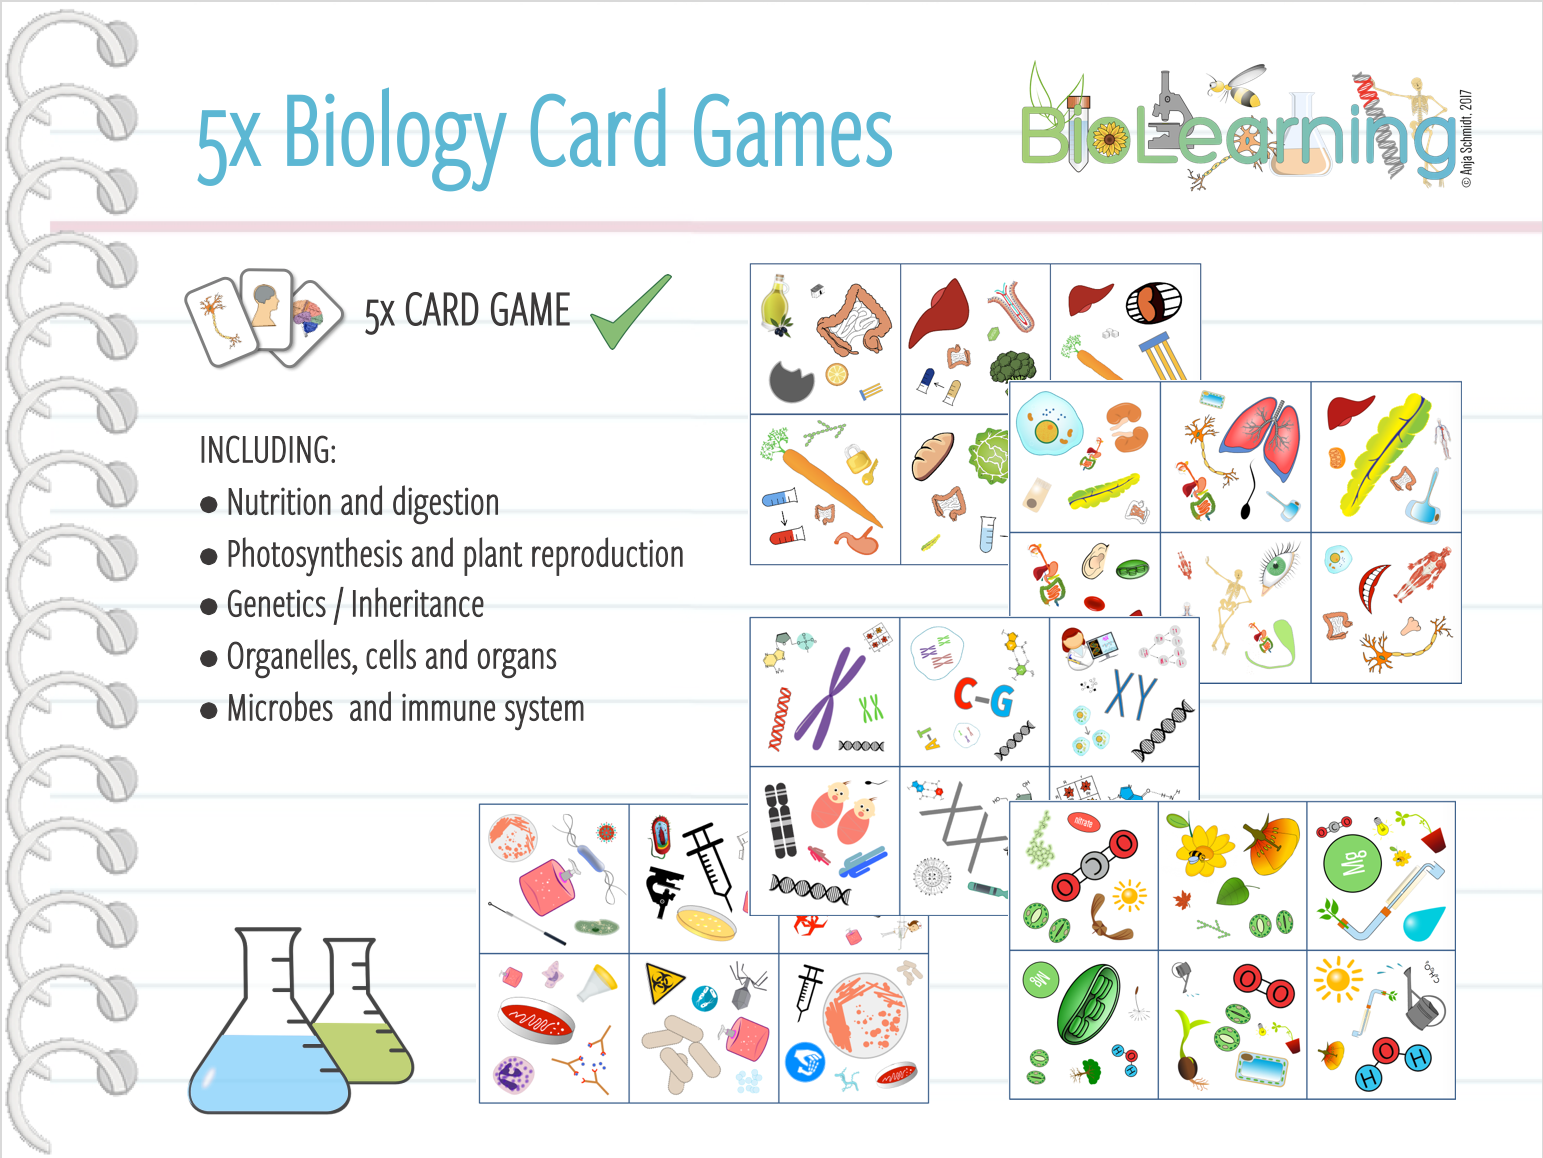 Biology - 5x Card Games